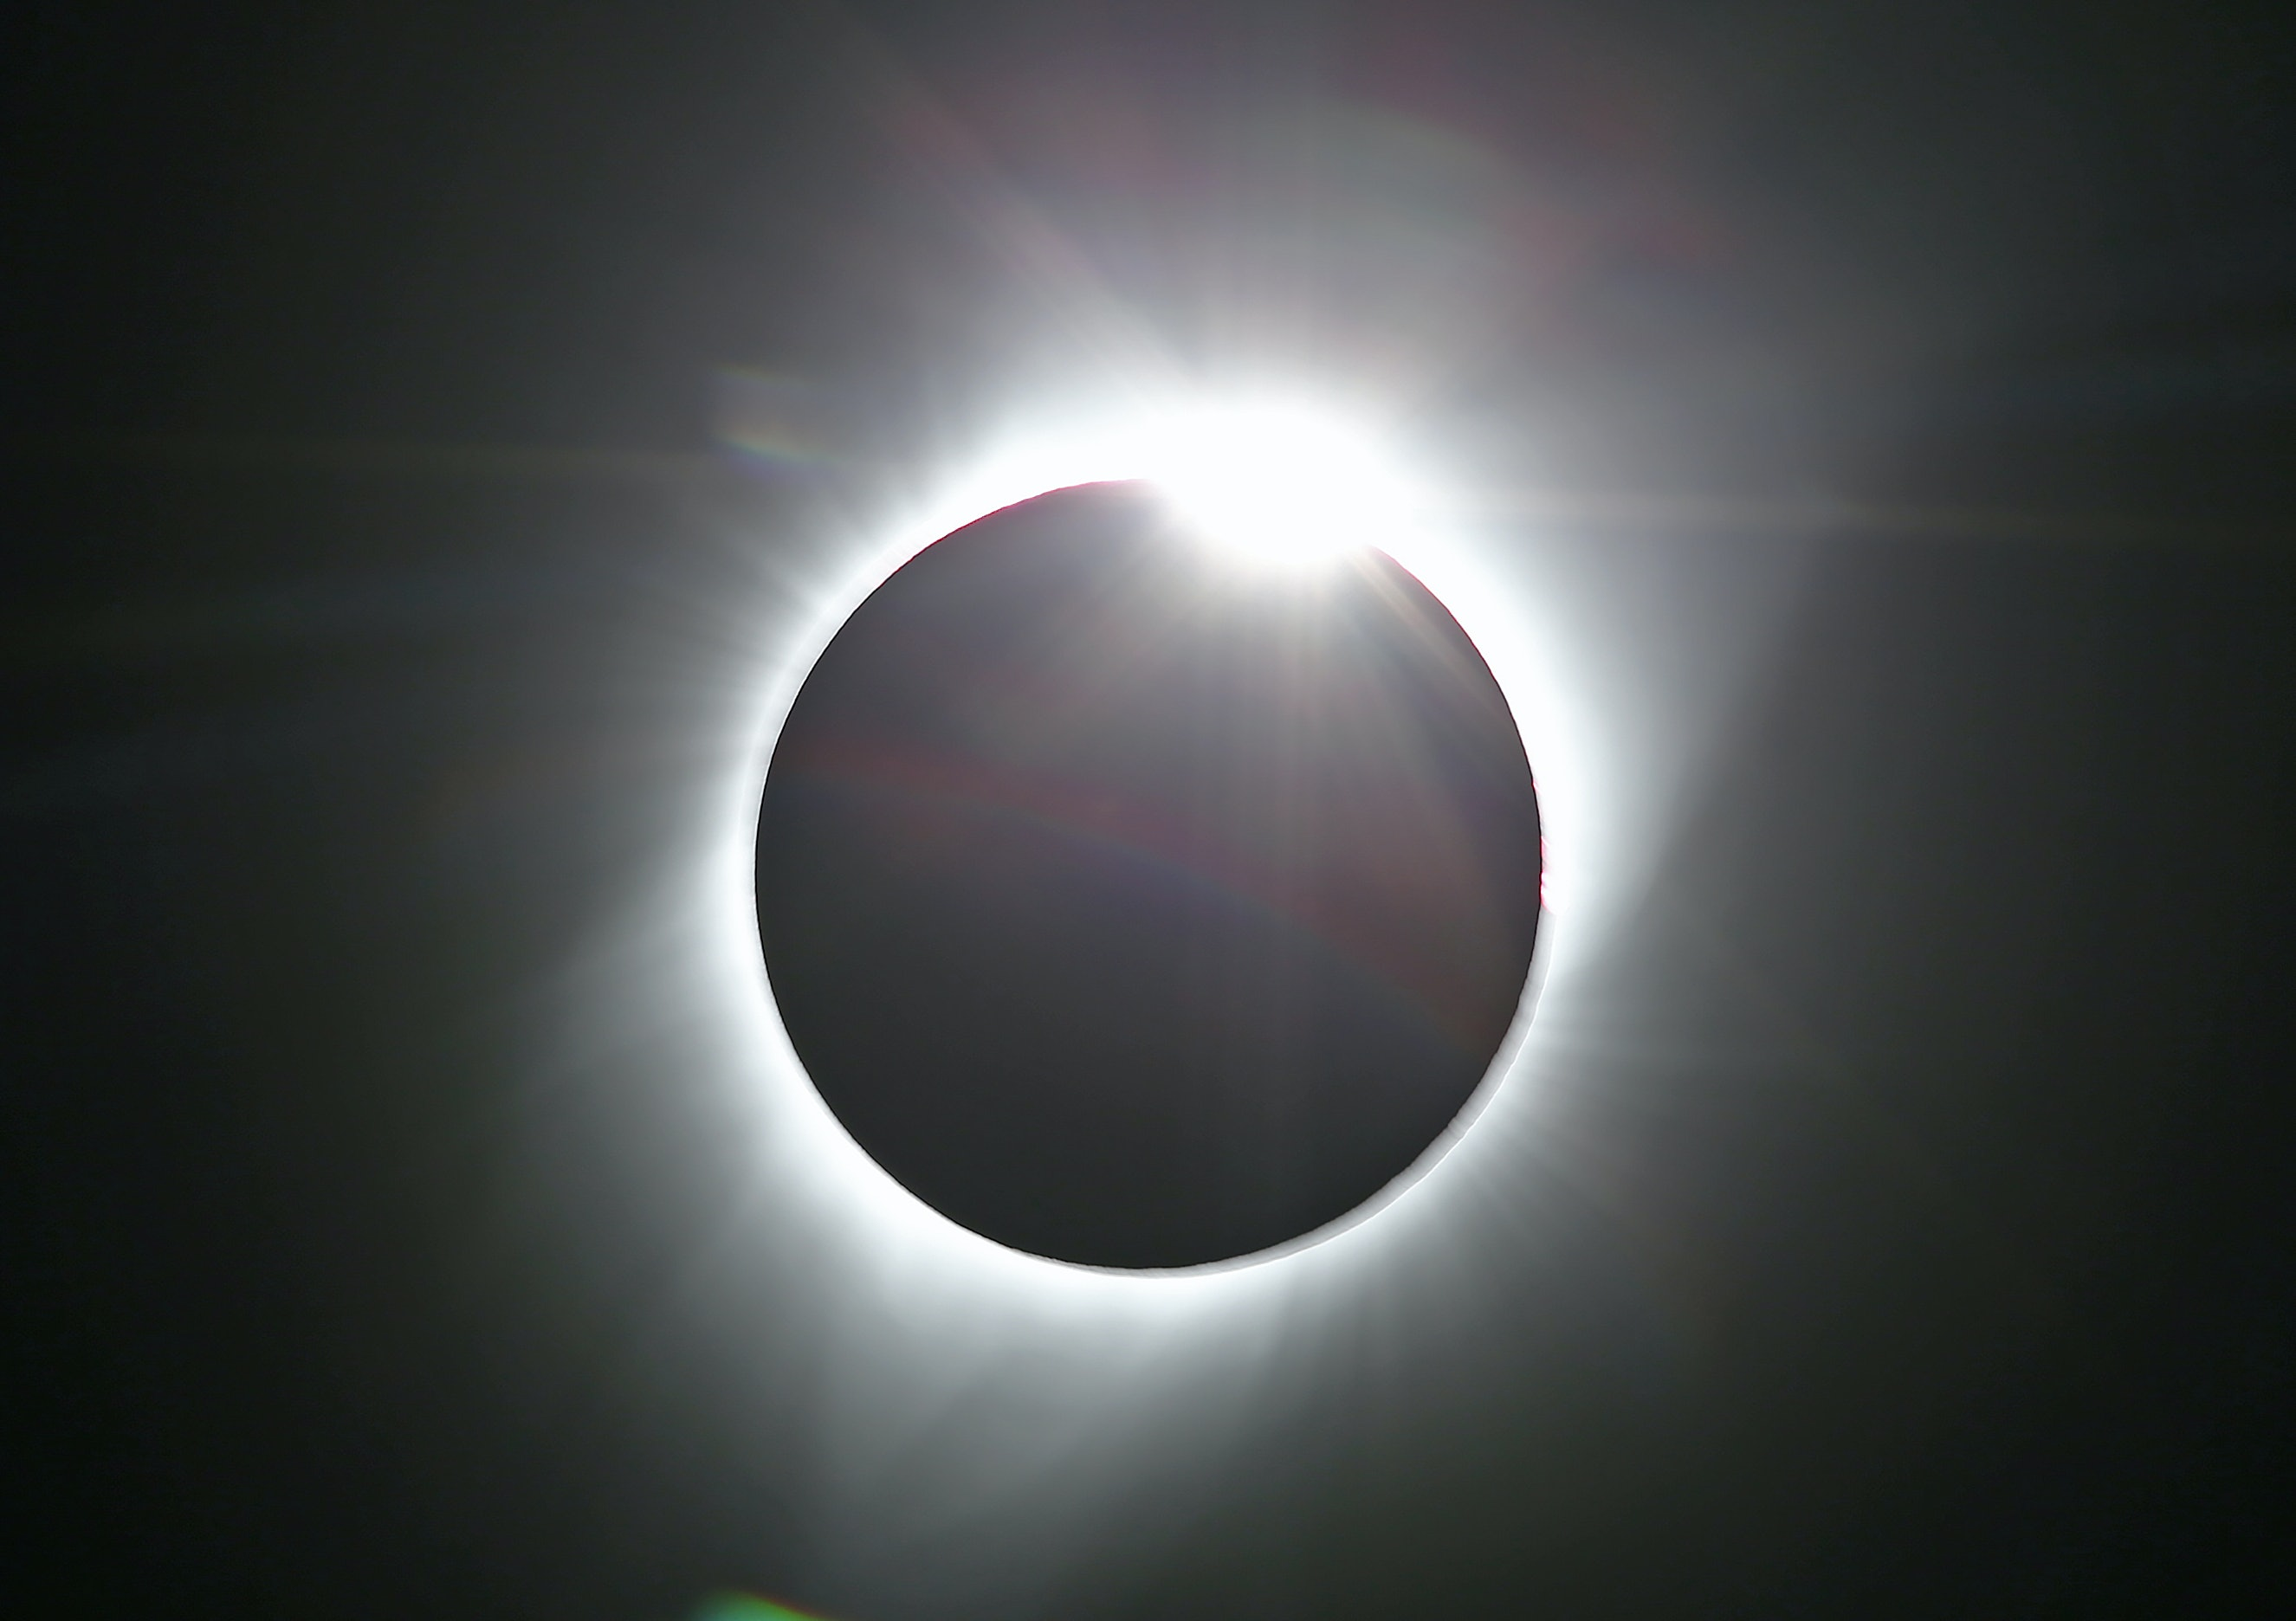 Astrological Significance of the Eclipses